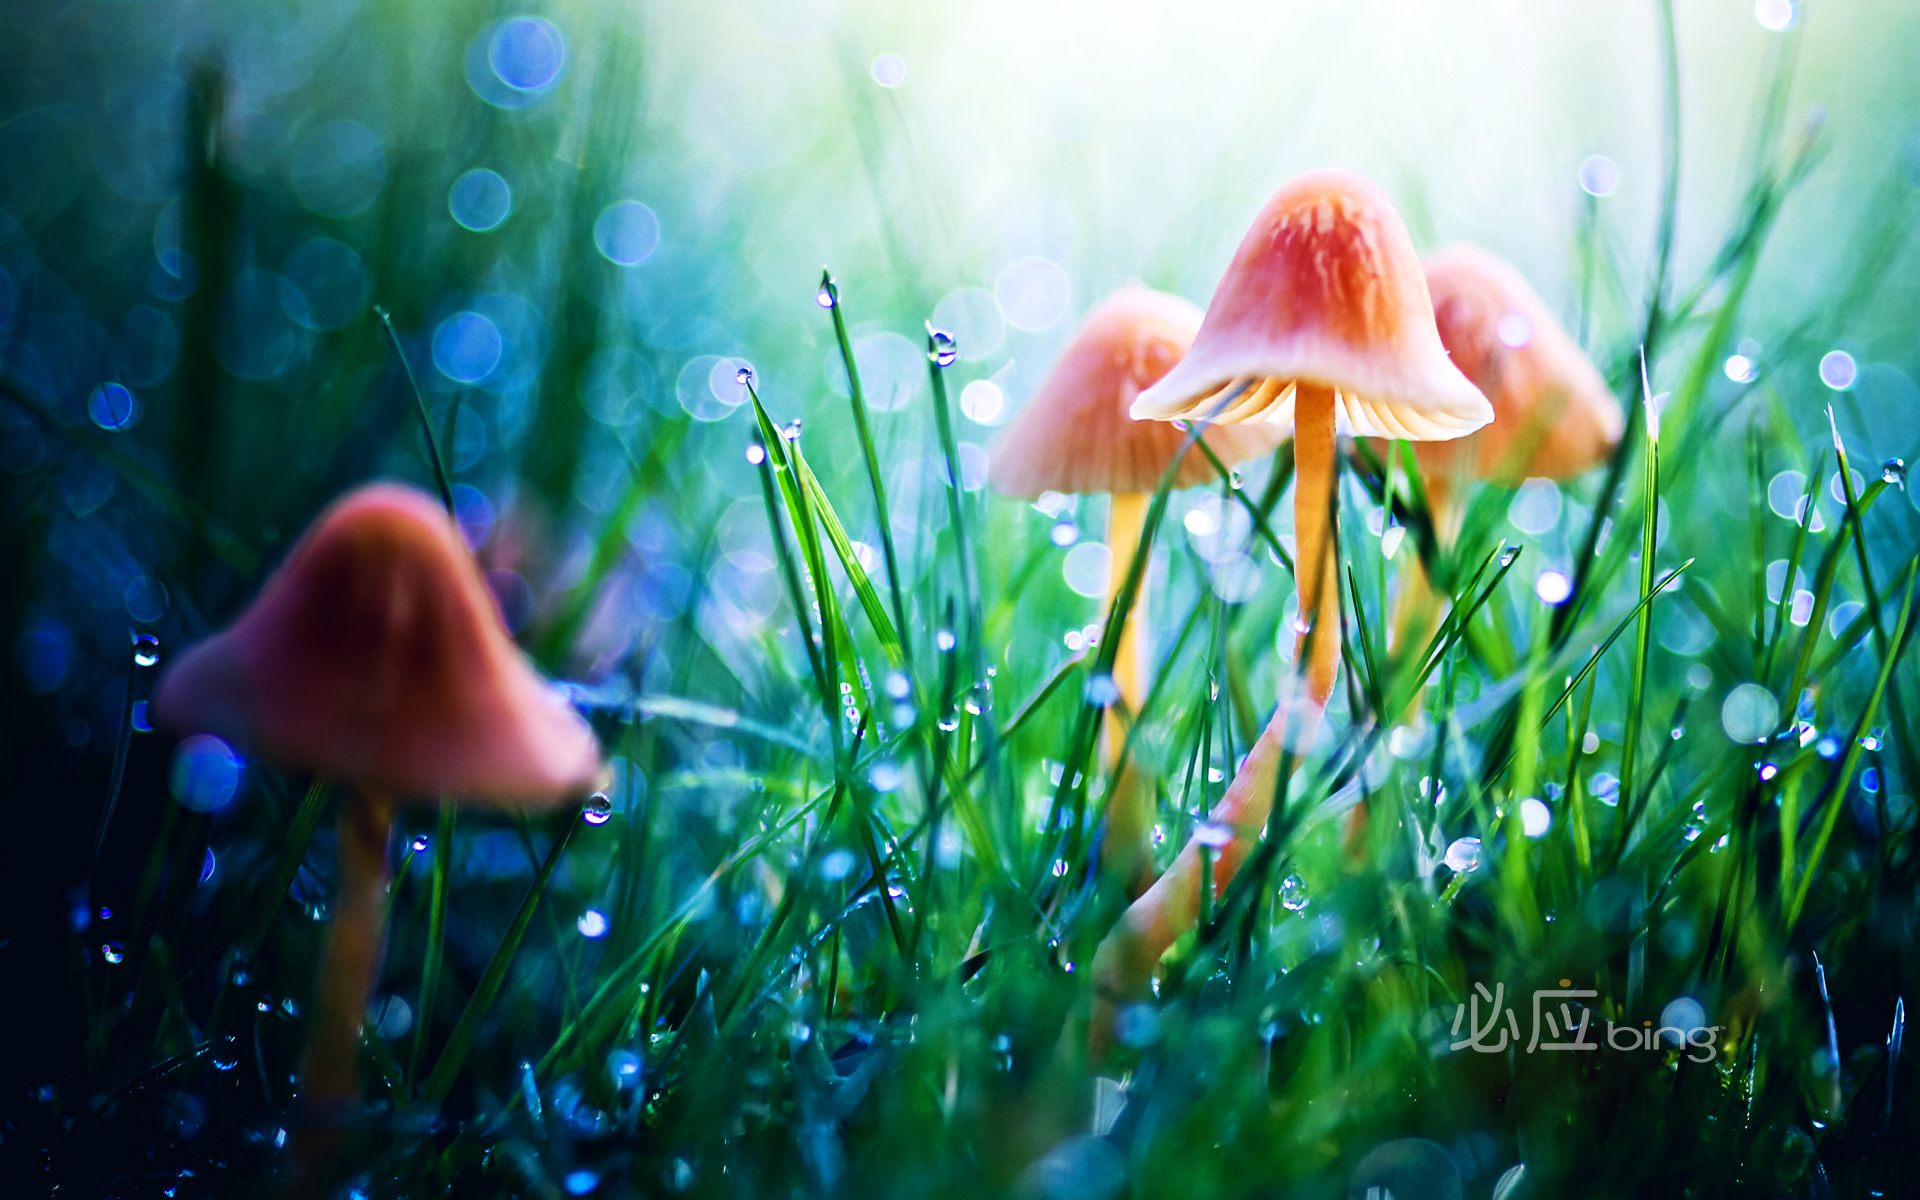 mushroom in grass wallpaper